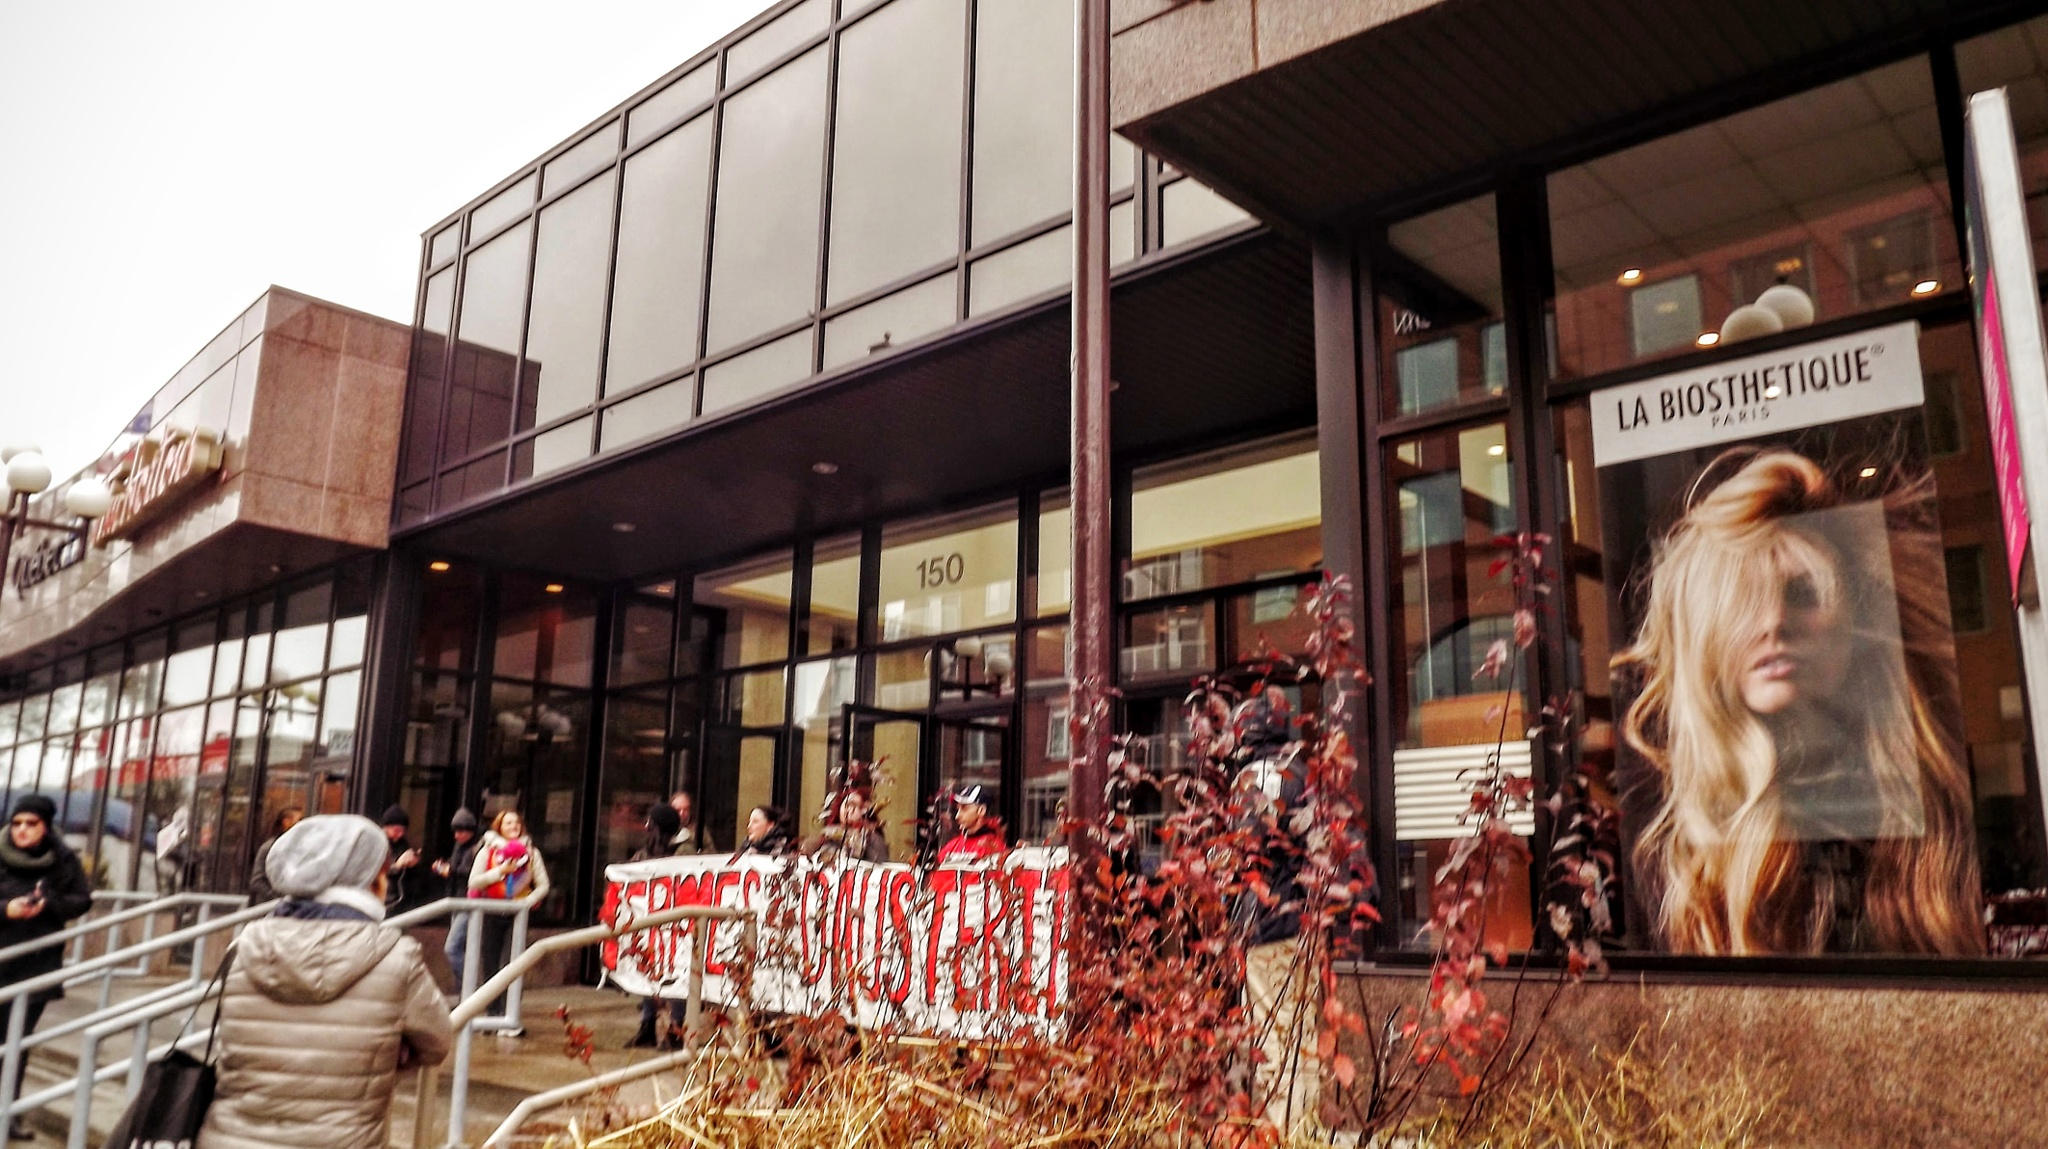 At the bank community group on strike by real.michaud.5036